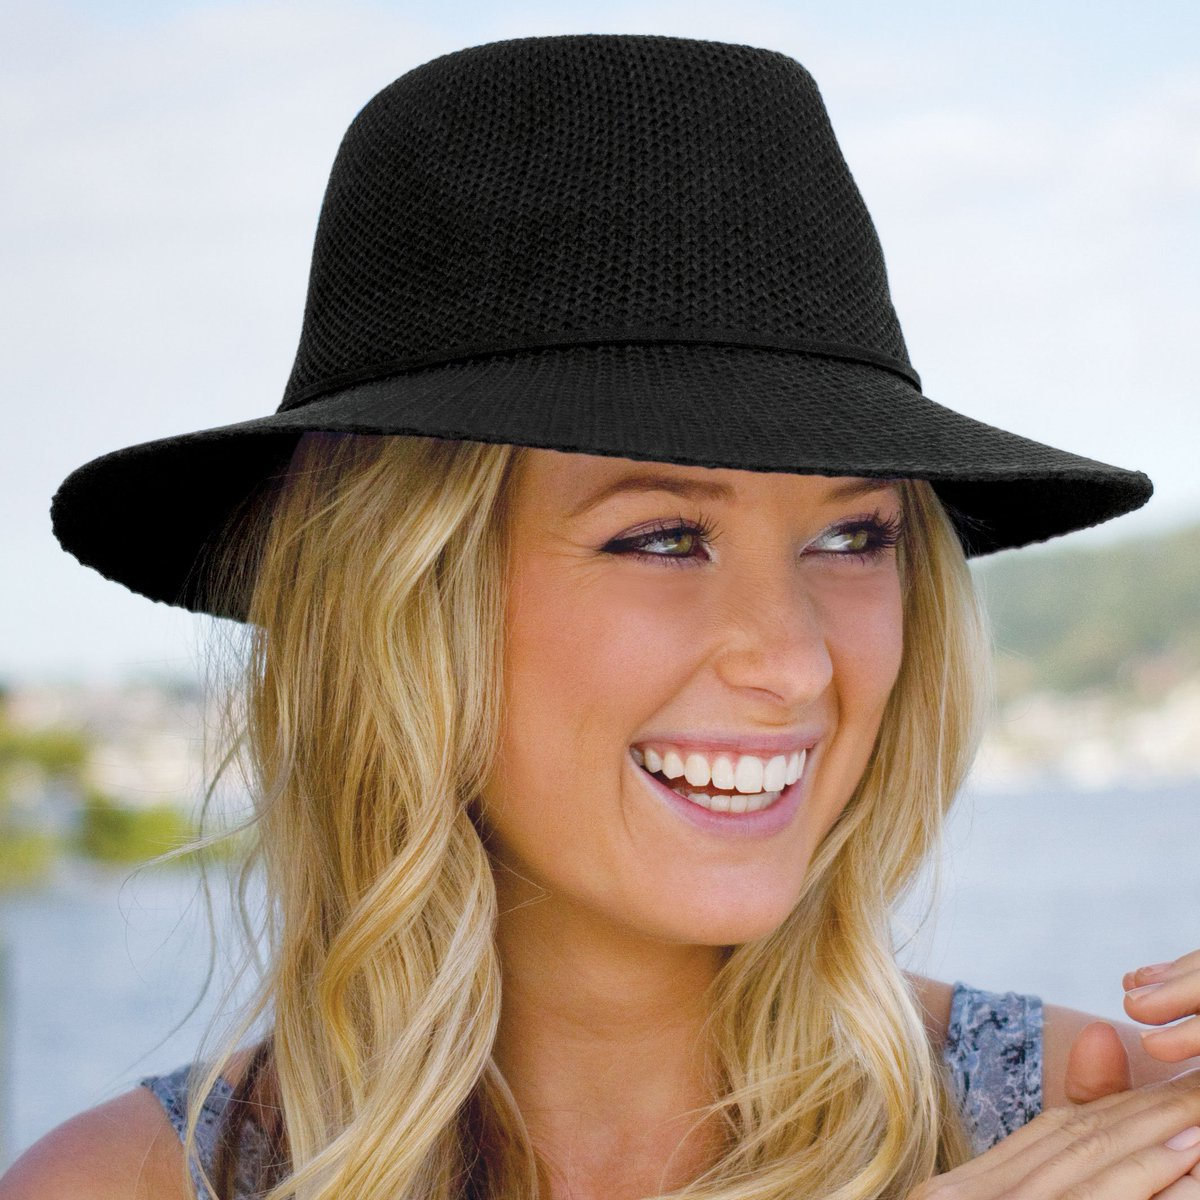 13b8ece30b045 All our popular Wallaroo Hats are now back in stock. Click the link for the  full collectionpic.twitter.com EFPKRmVSCh